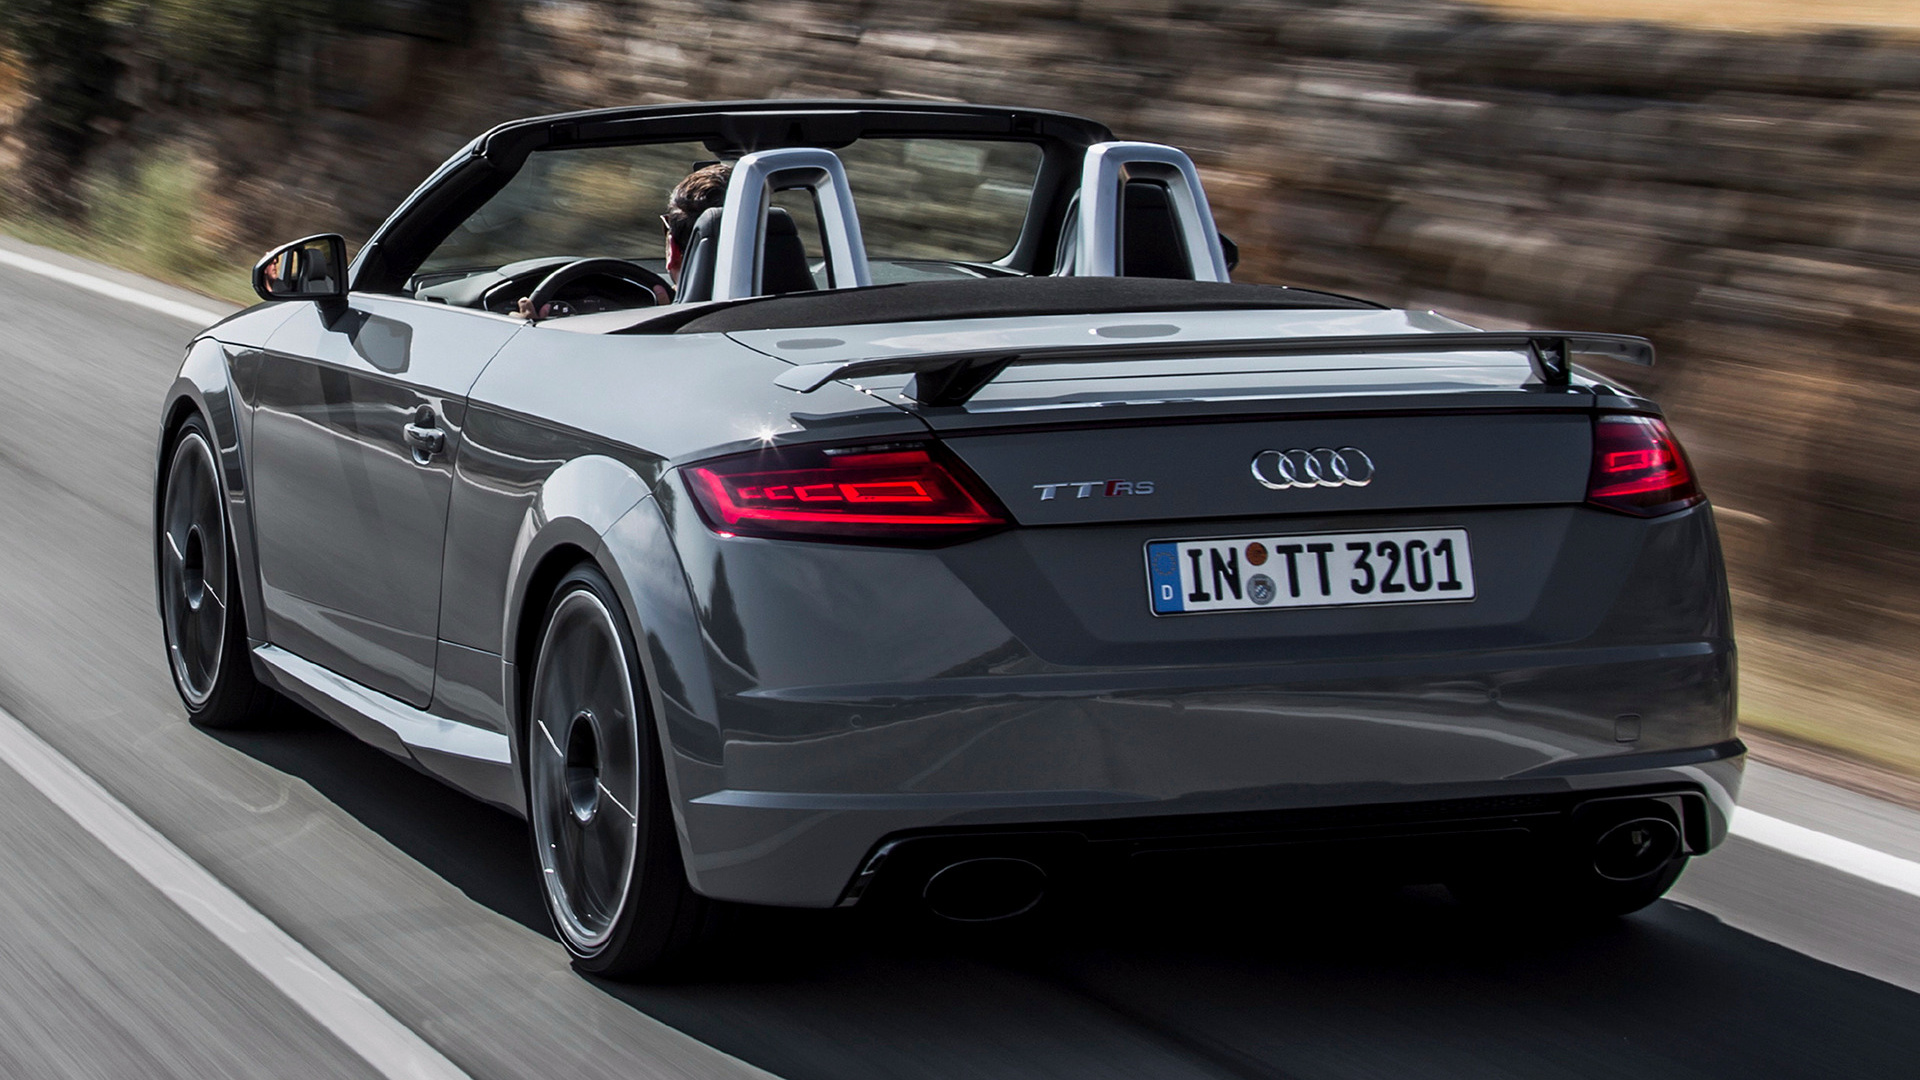 2016 audi tt rs roadster wallpapers and hd images car. Black Bedroom Furniture Sets. Home Design Ideas